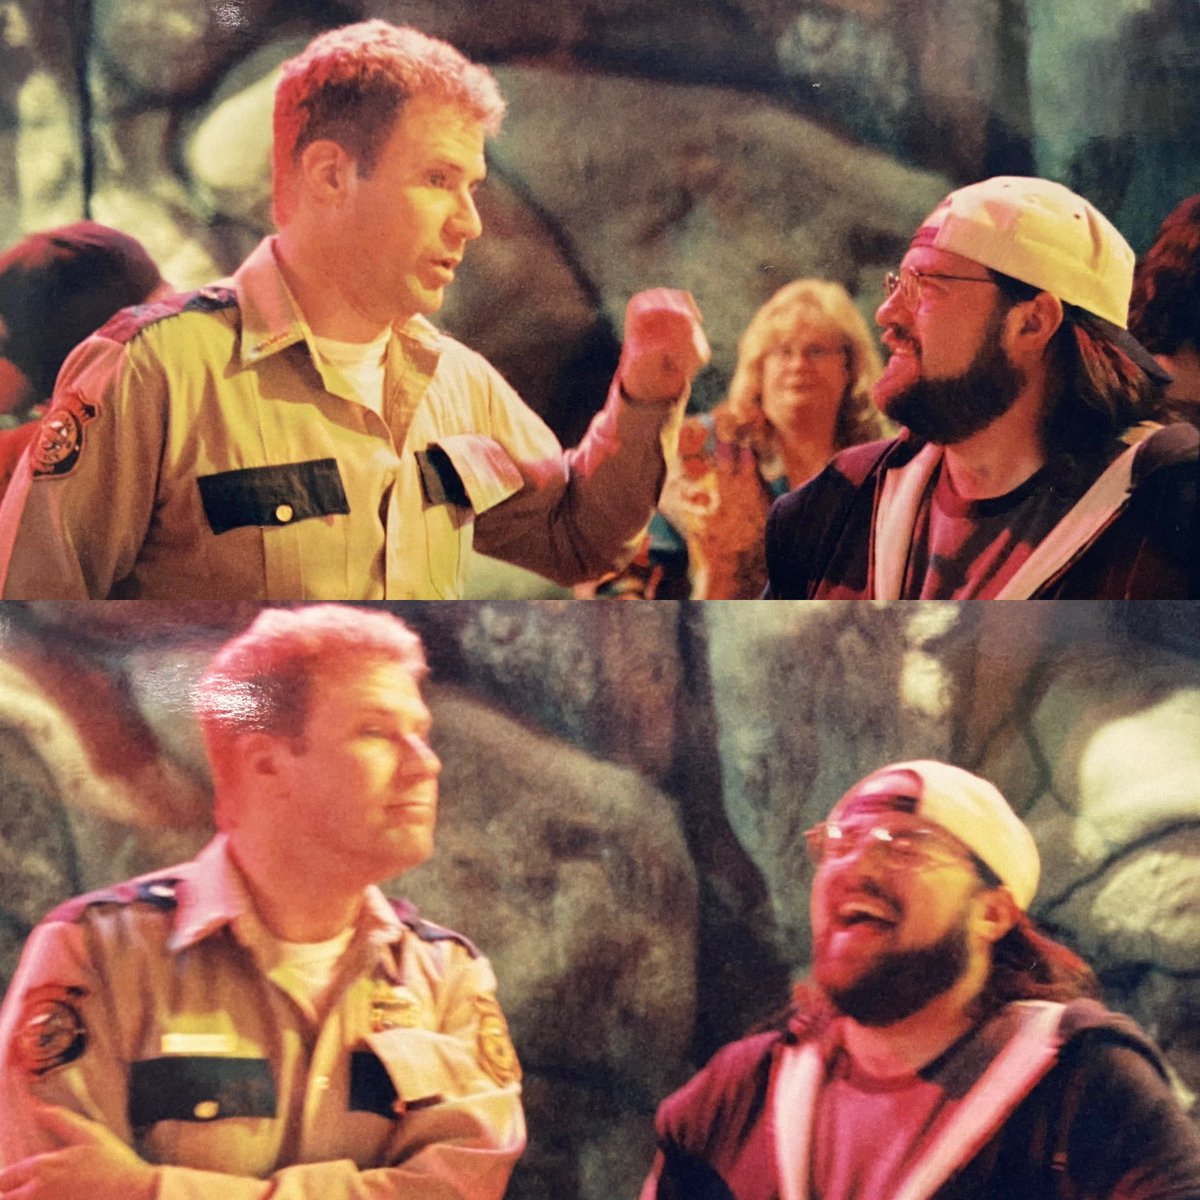 Since the news is depressing and the future seems so chillingly uncertain, here's what I'm drawing strength & inspiration from today: picture proof of how hard Will Ferrel made me laugh while we were filming Jay & Silent Bob Strike Back. Also: doing a new FAT MAN BEYOND tonight! https://t.co/o8kBxSQXXk